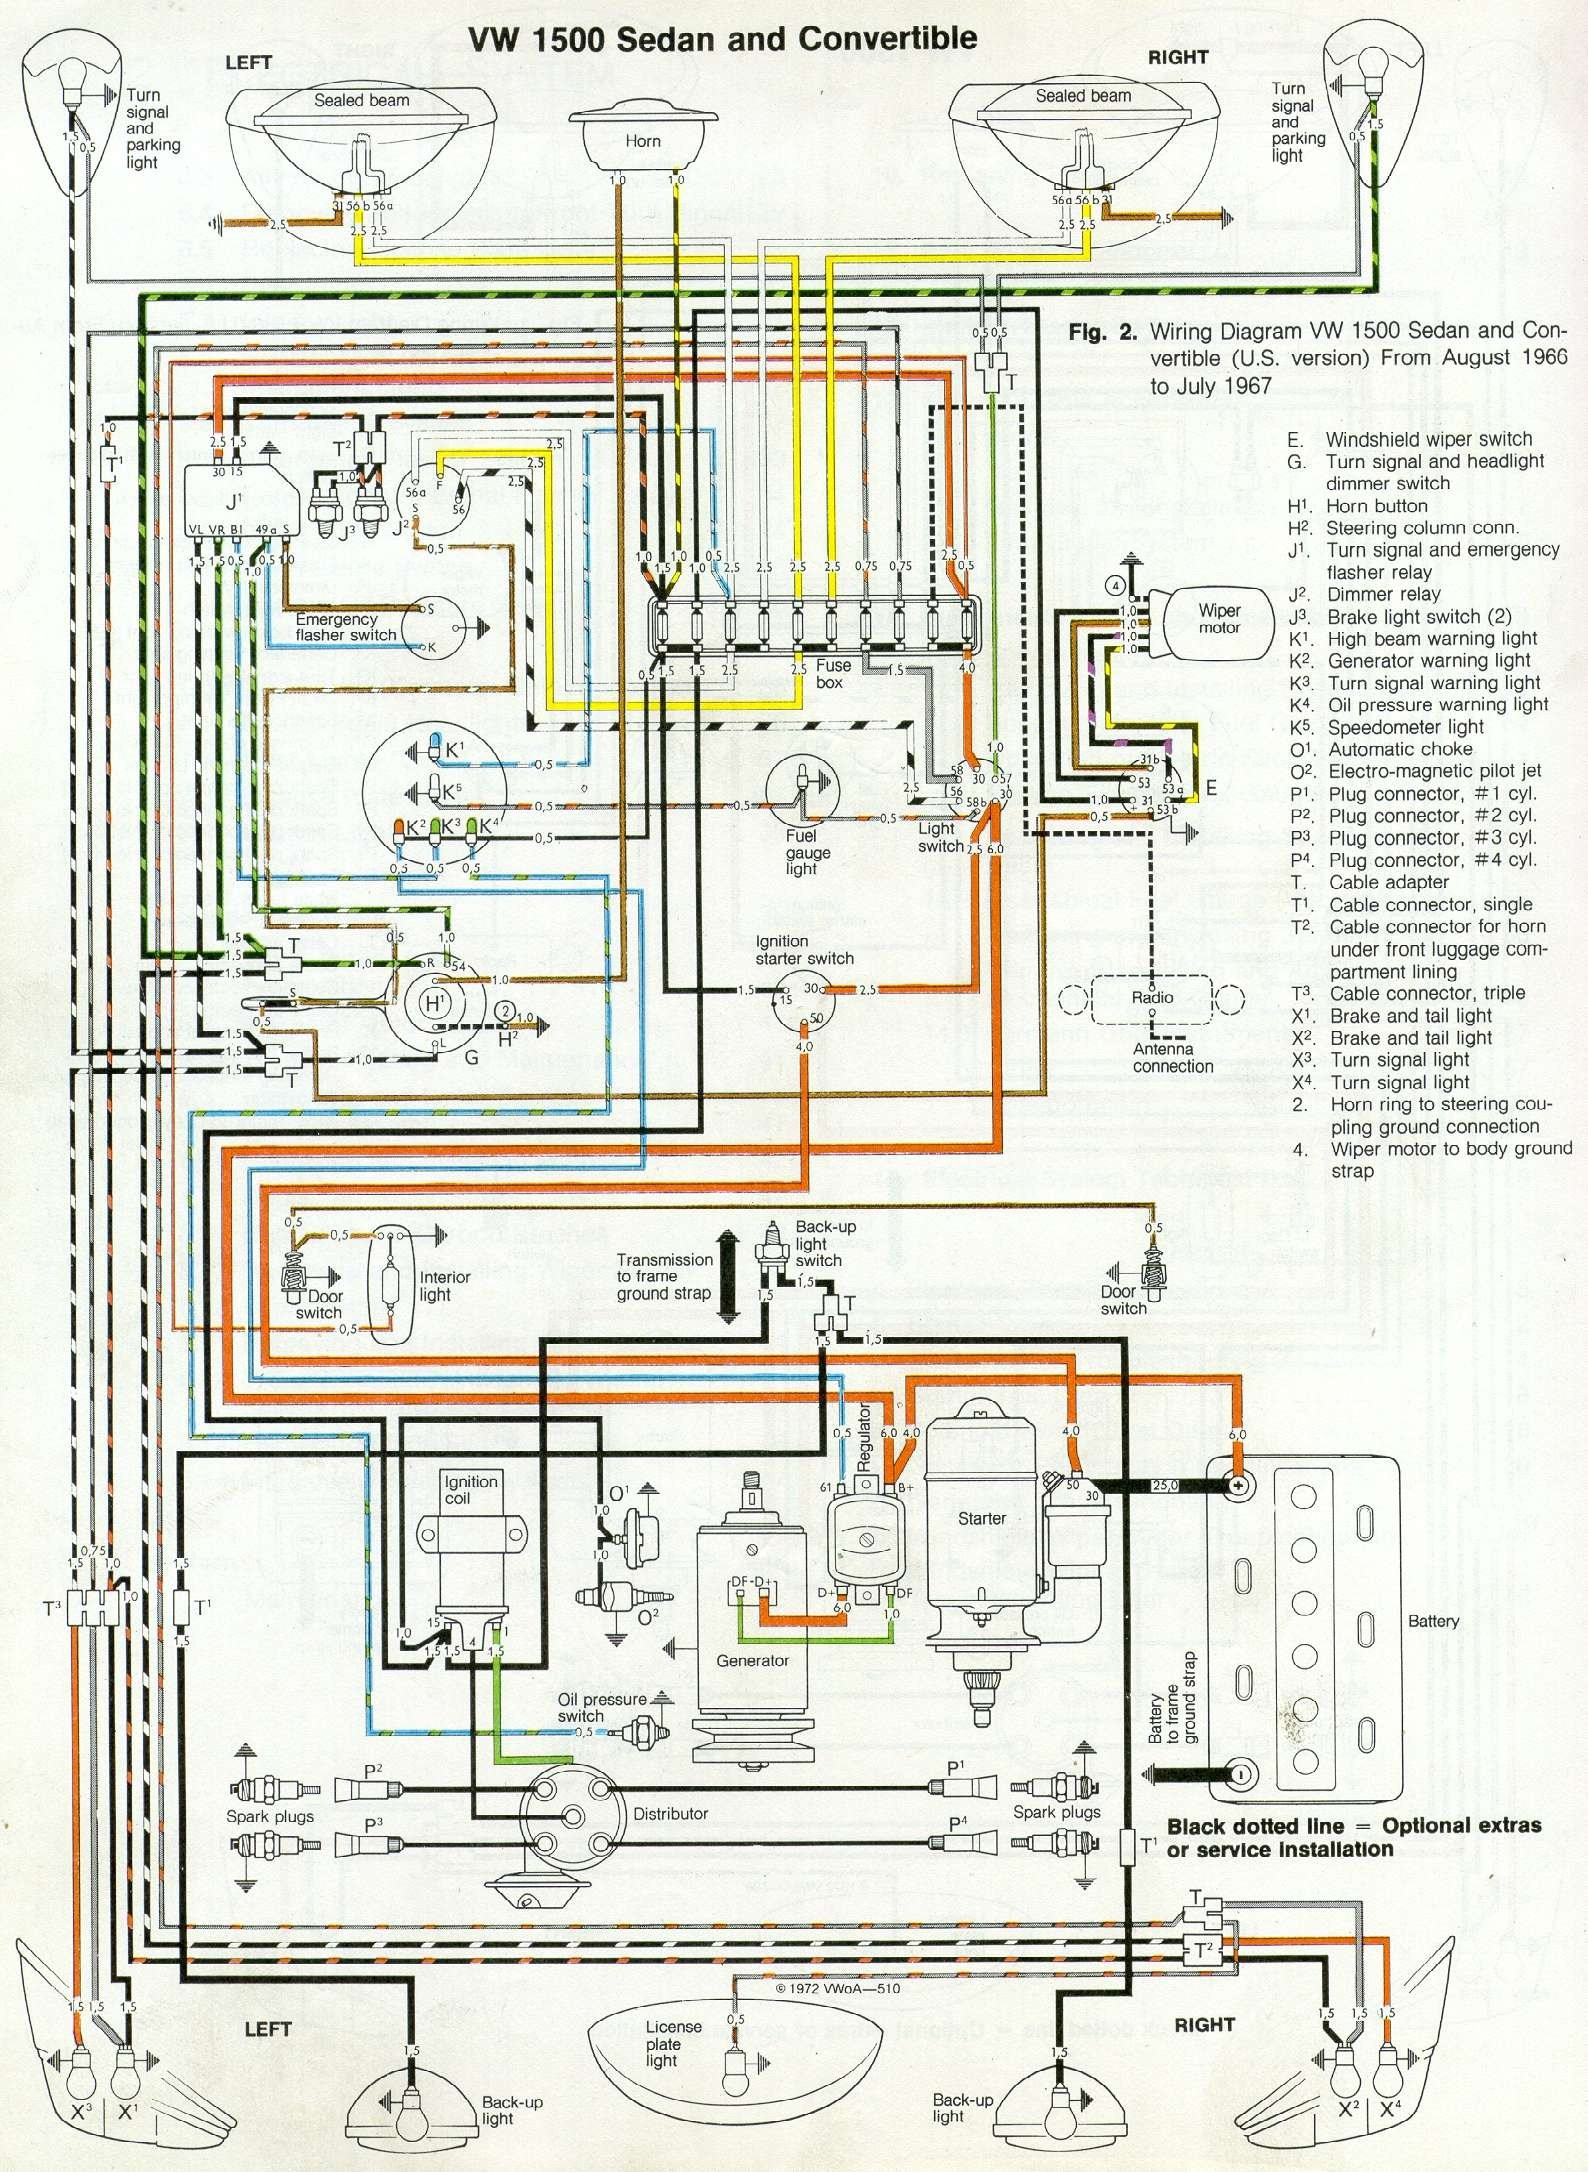 VW Beetle Wiring Digram 67 beetle wiring diagram u s version 1967 vw beetle 1970 vw beetle wiring schematic at n-0.co